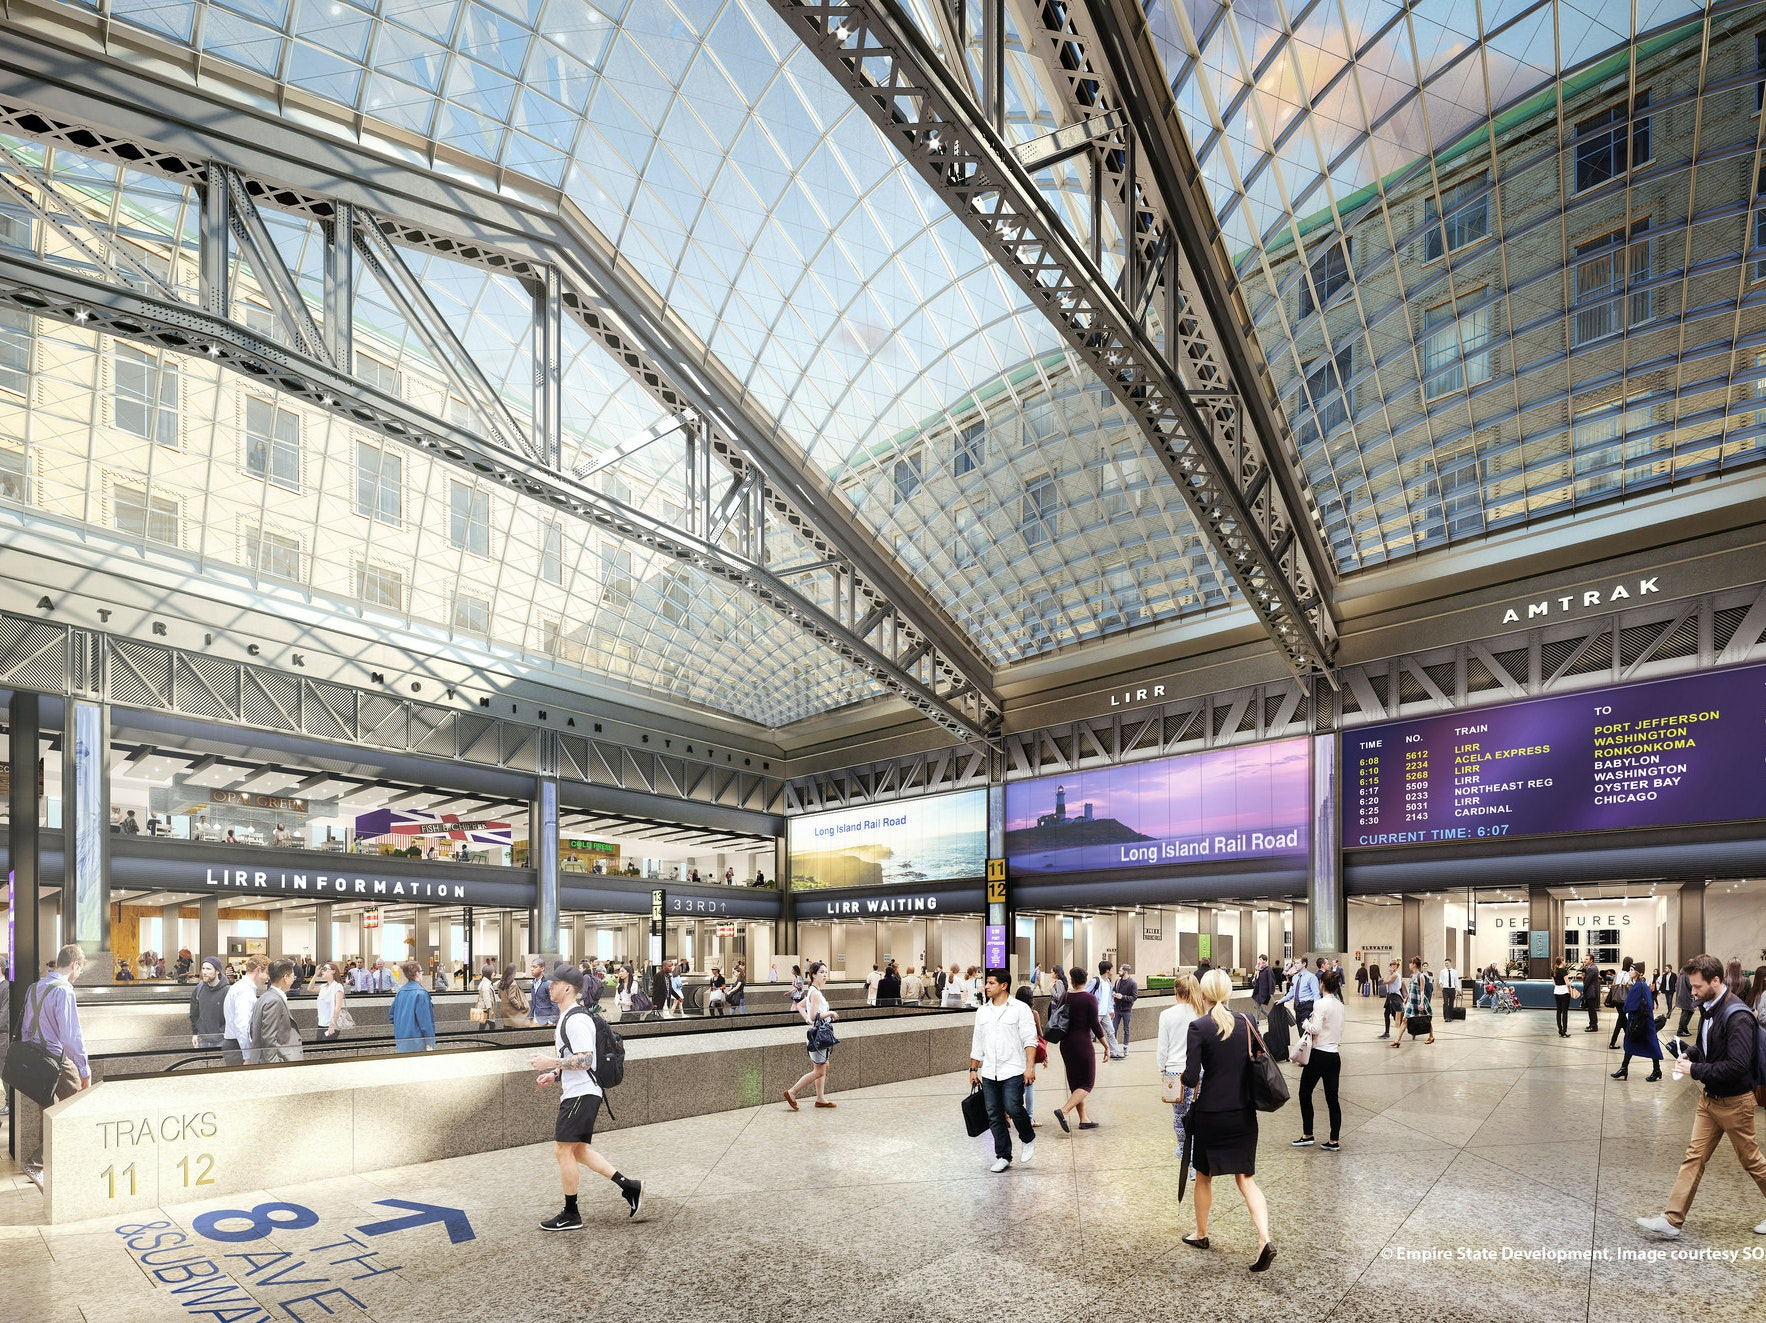 New York City's Much-Hated Penn Station is Getting a Makeover